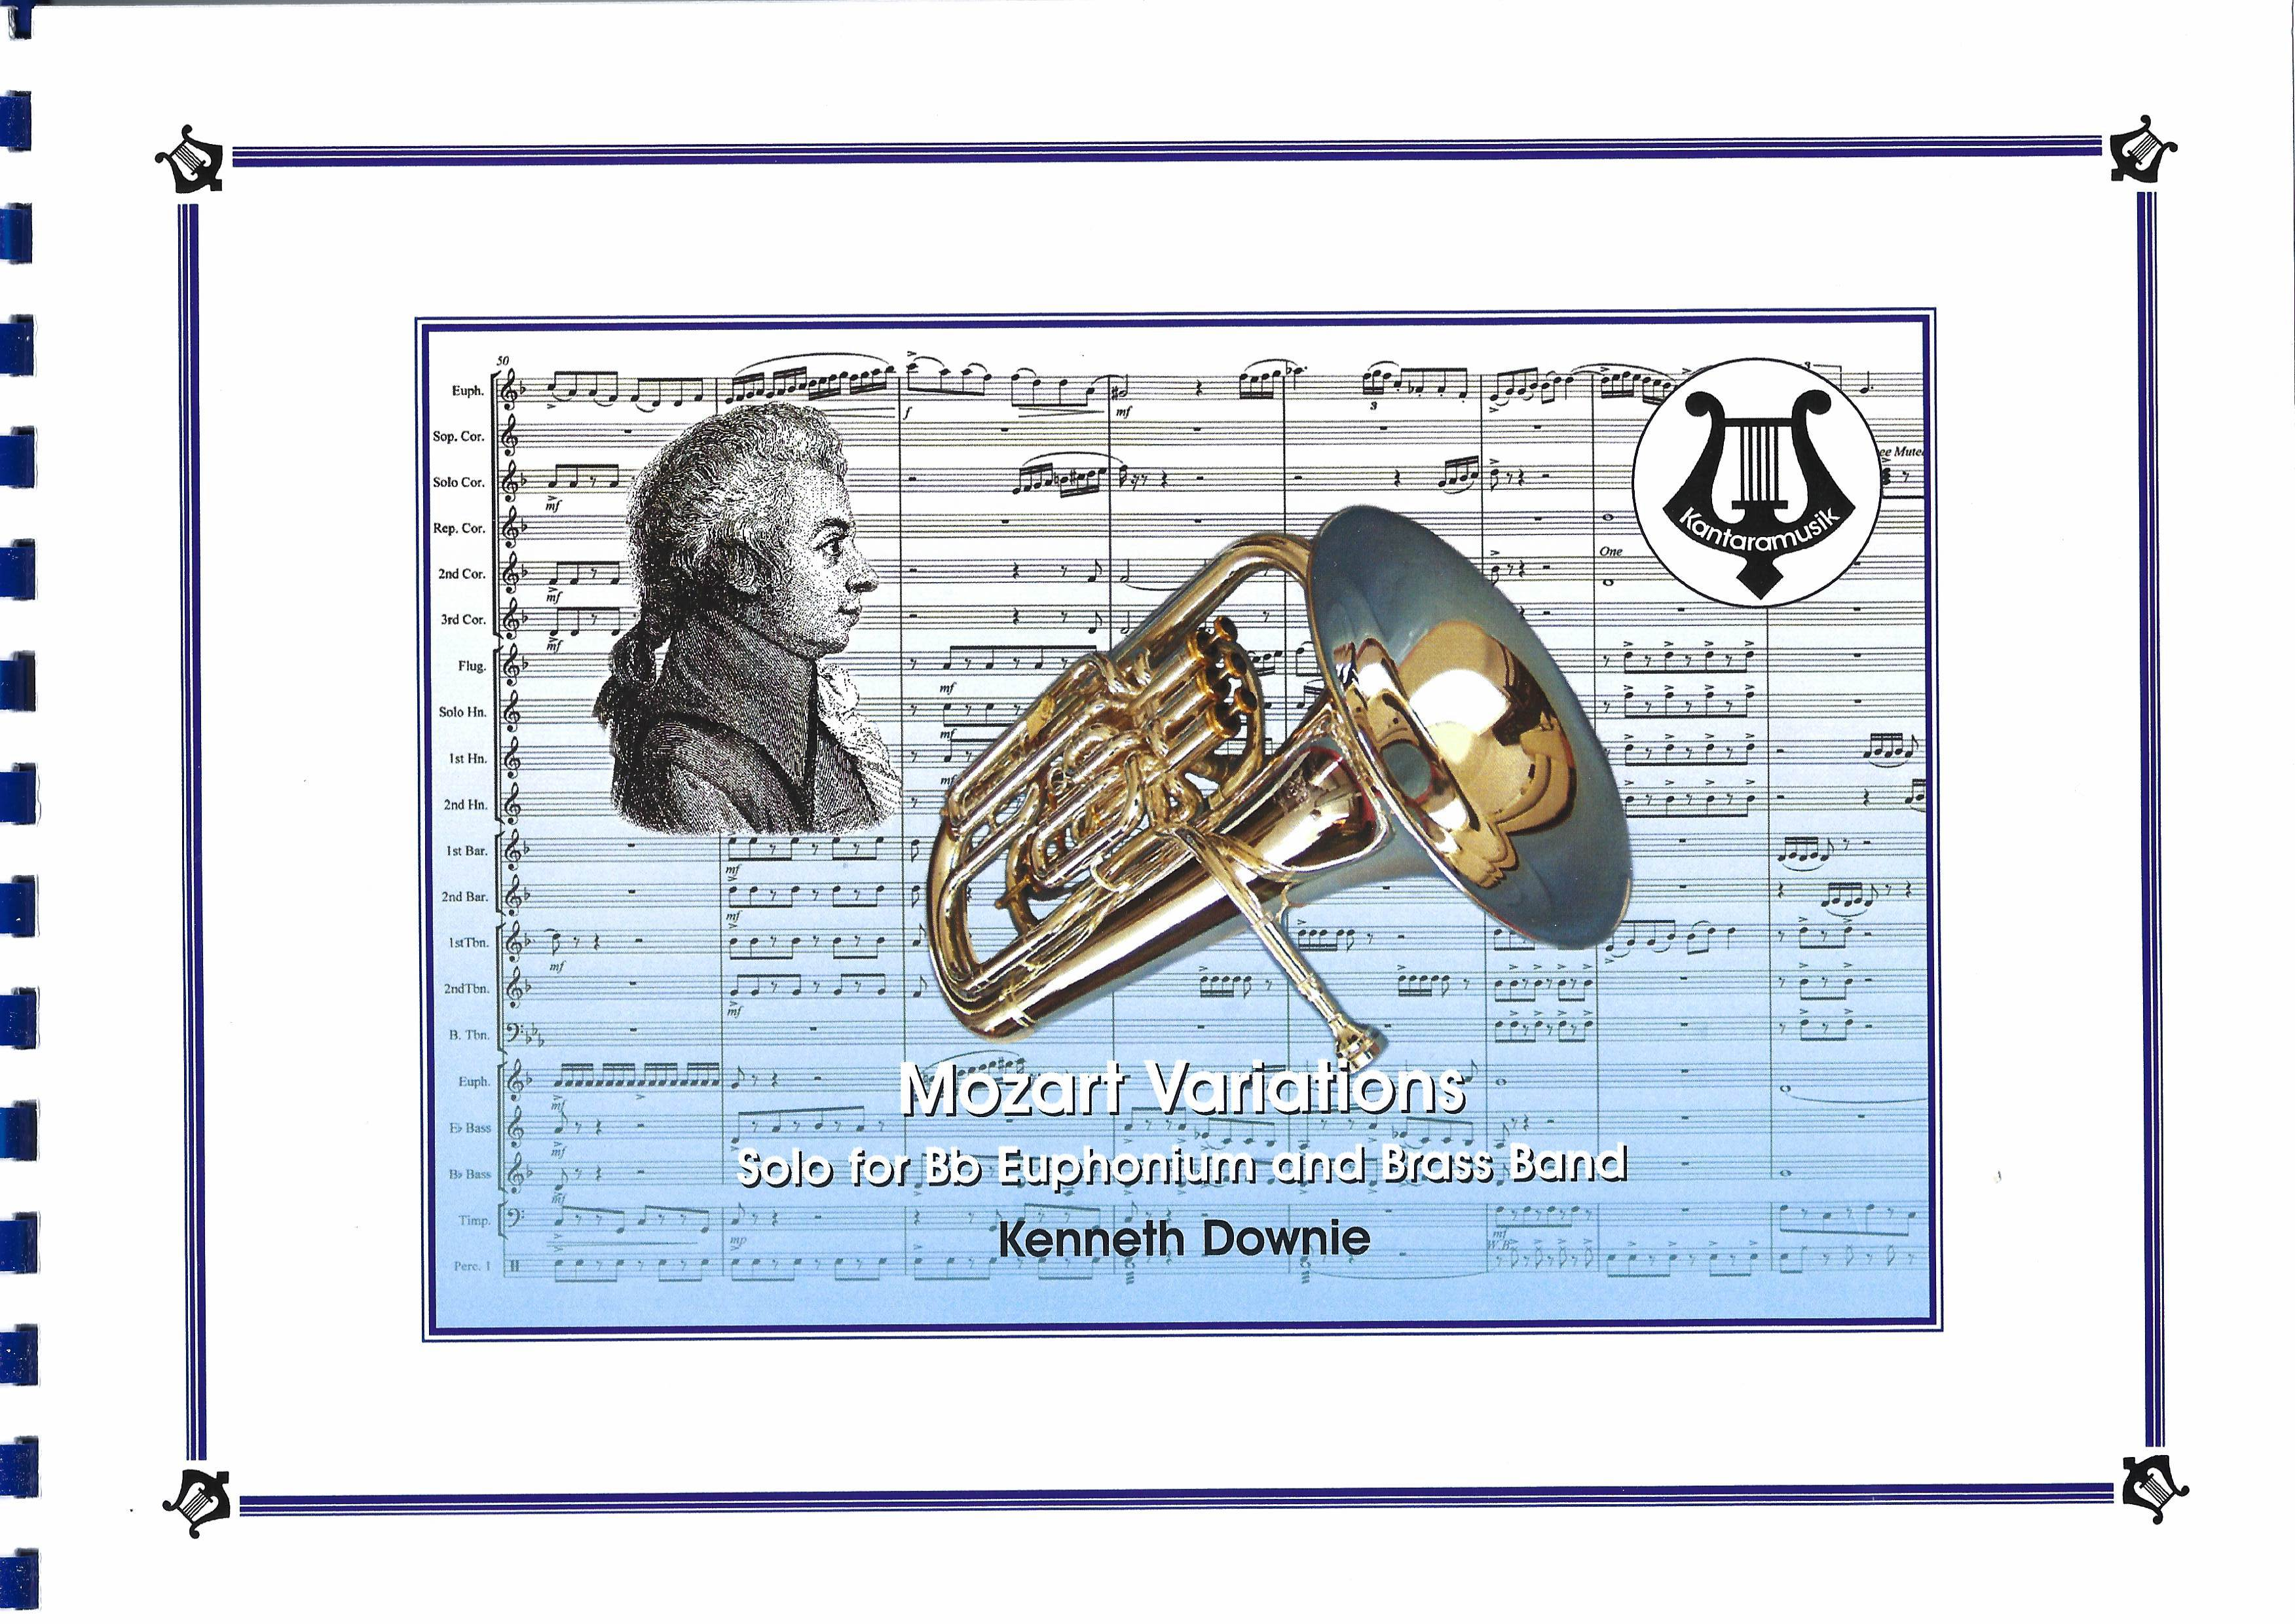 Mozart Variations - Kenneth Downie - Euphonium and Brass Band